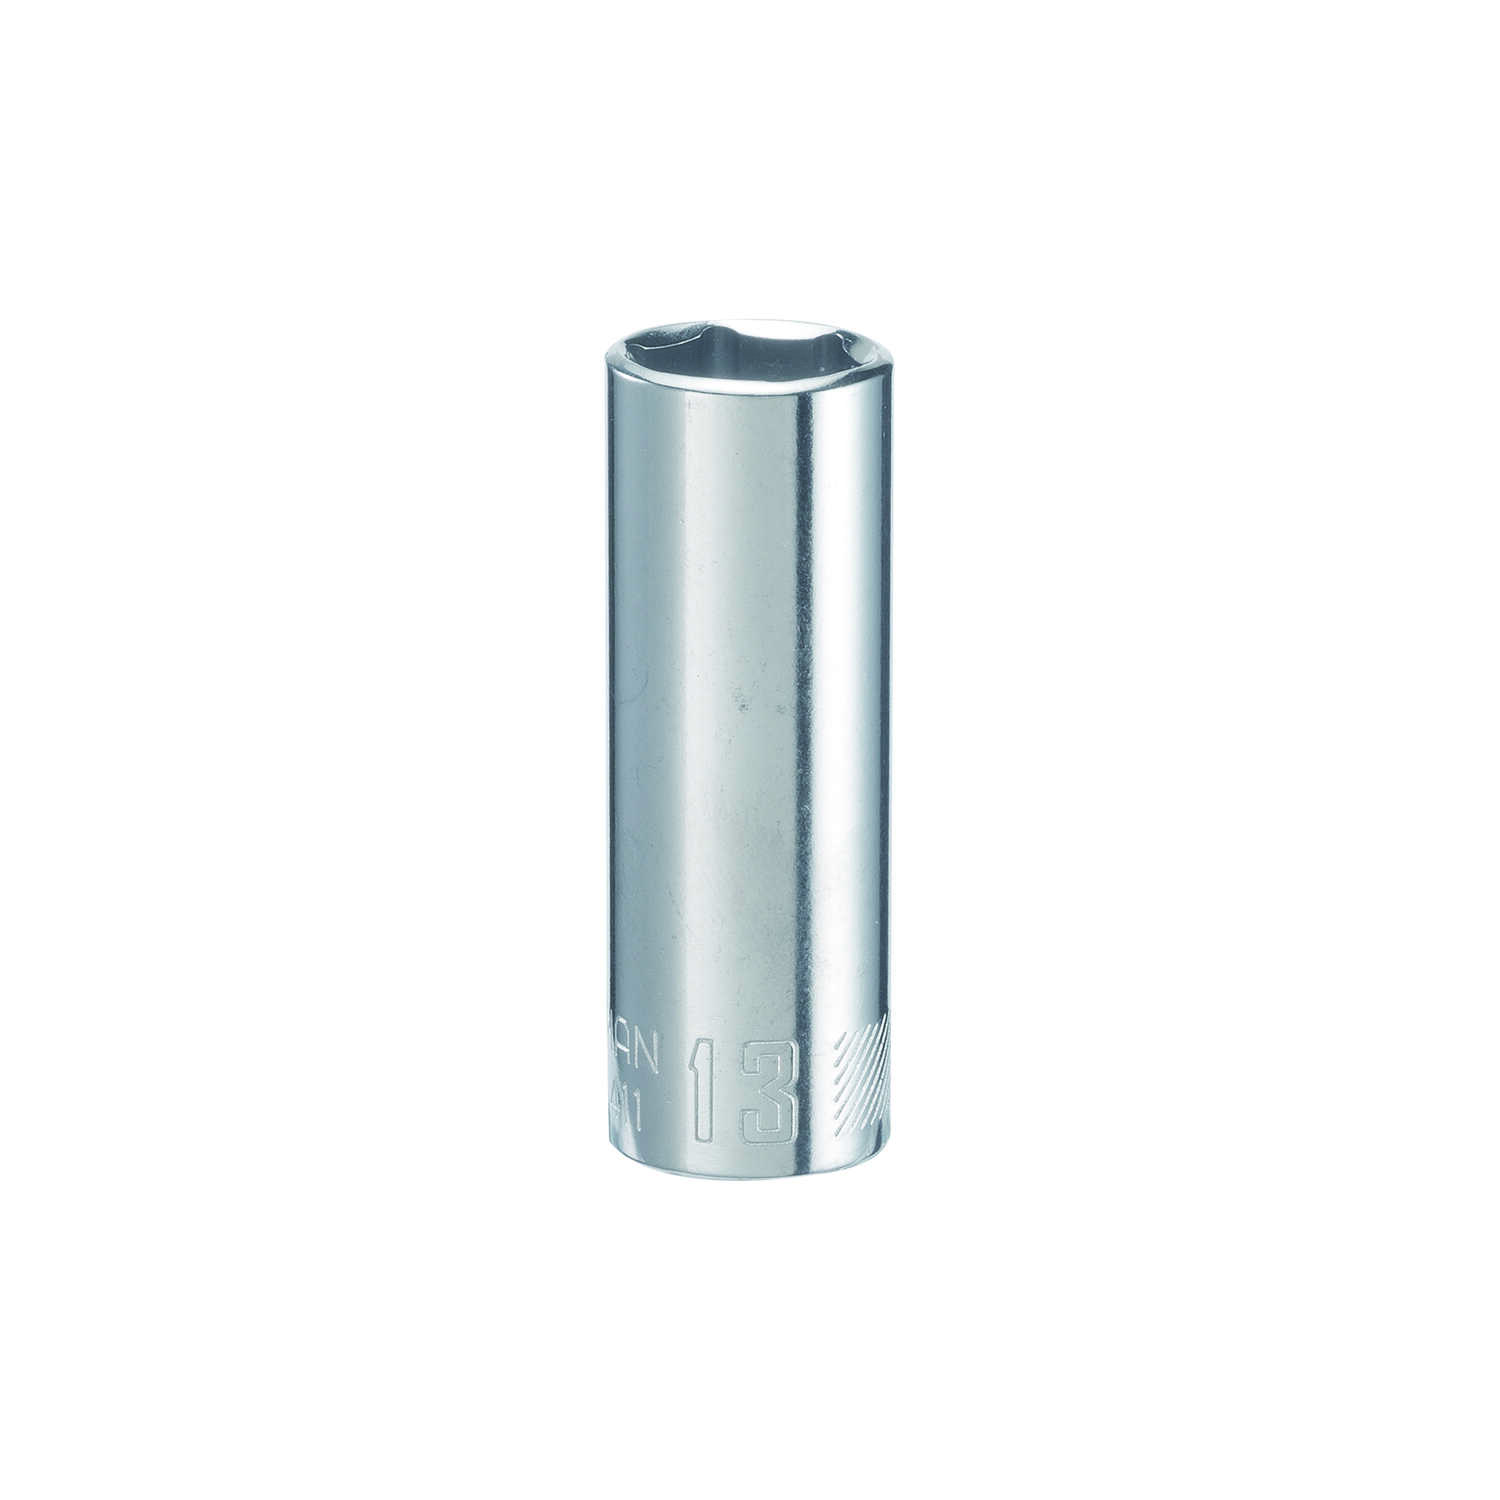 Craftsman  13 mm  x 1/4 in. drive  Metric  6 Point Deep  Socket  1 pc.